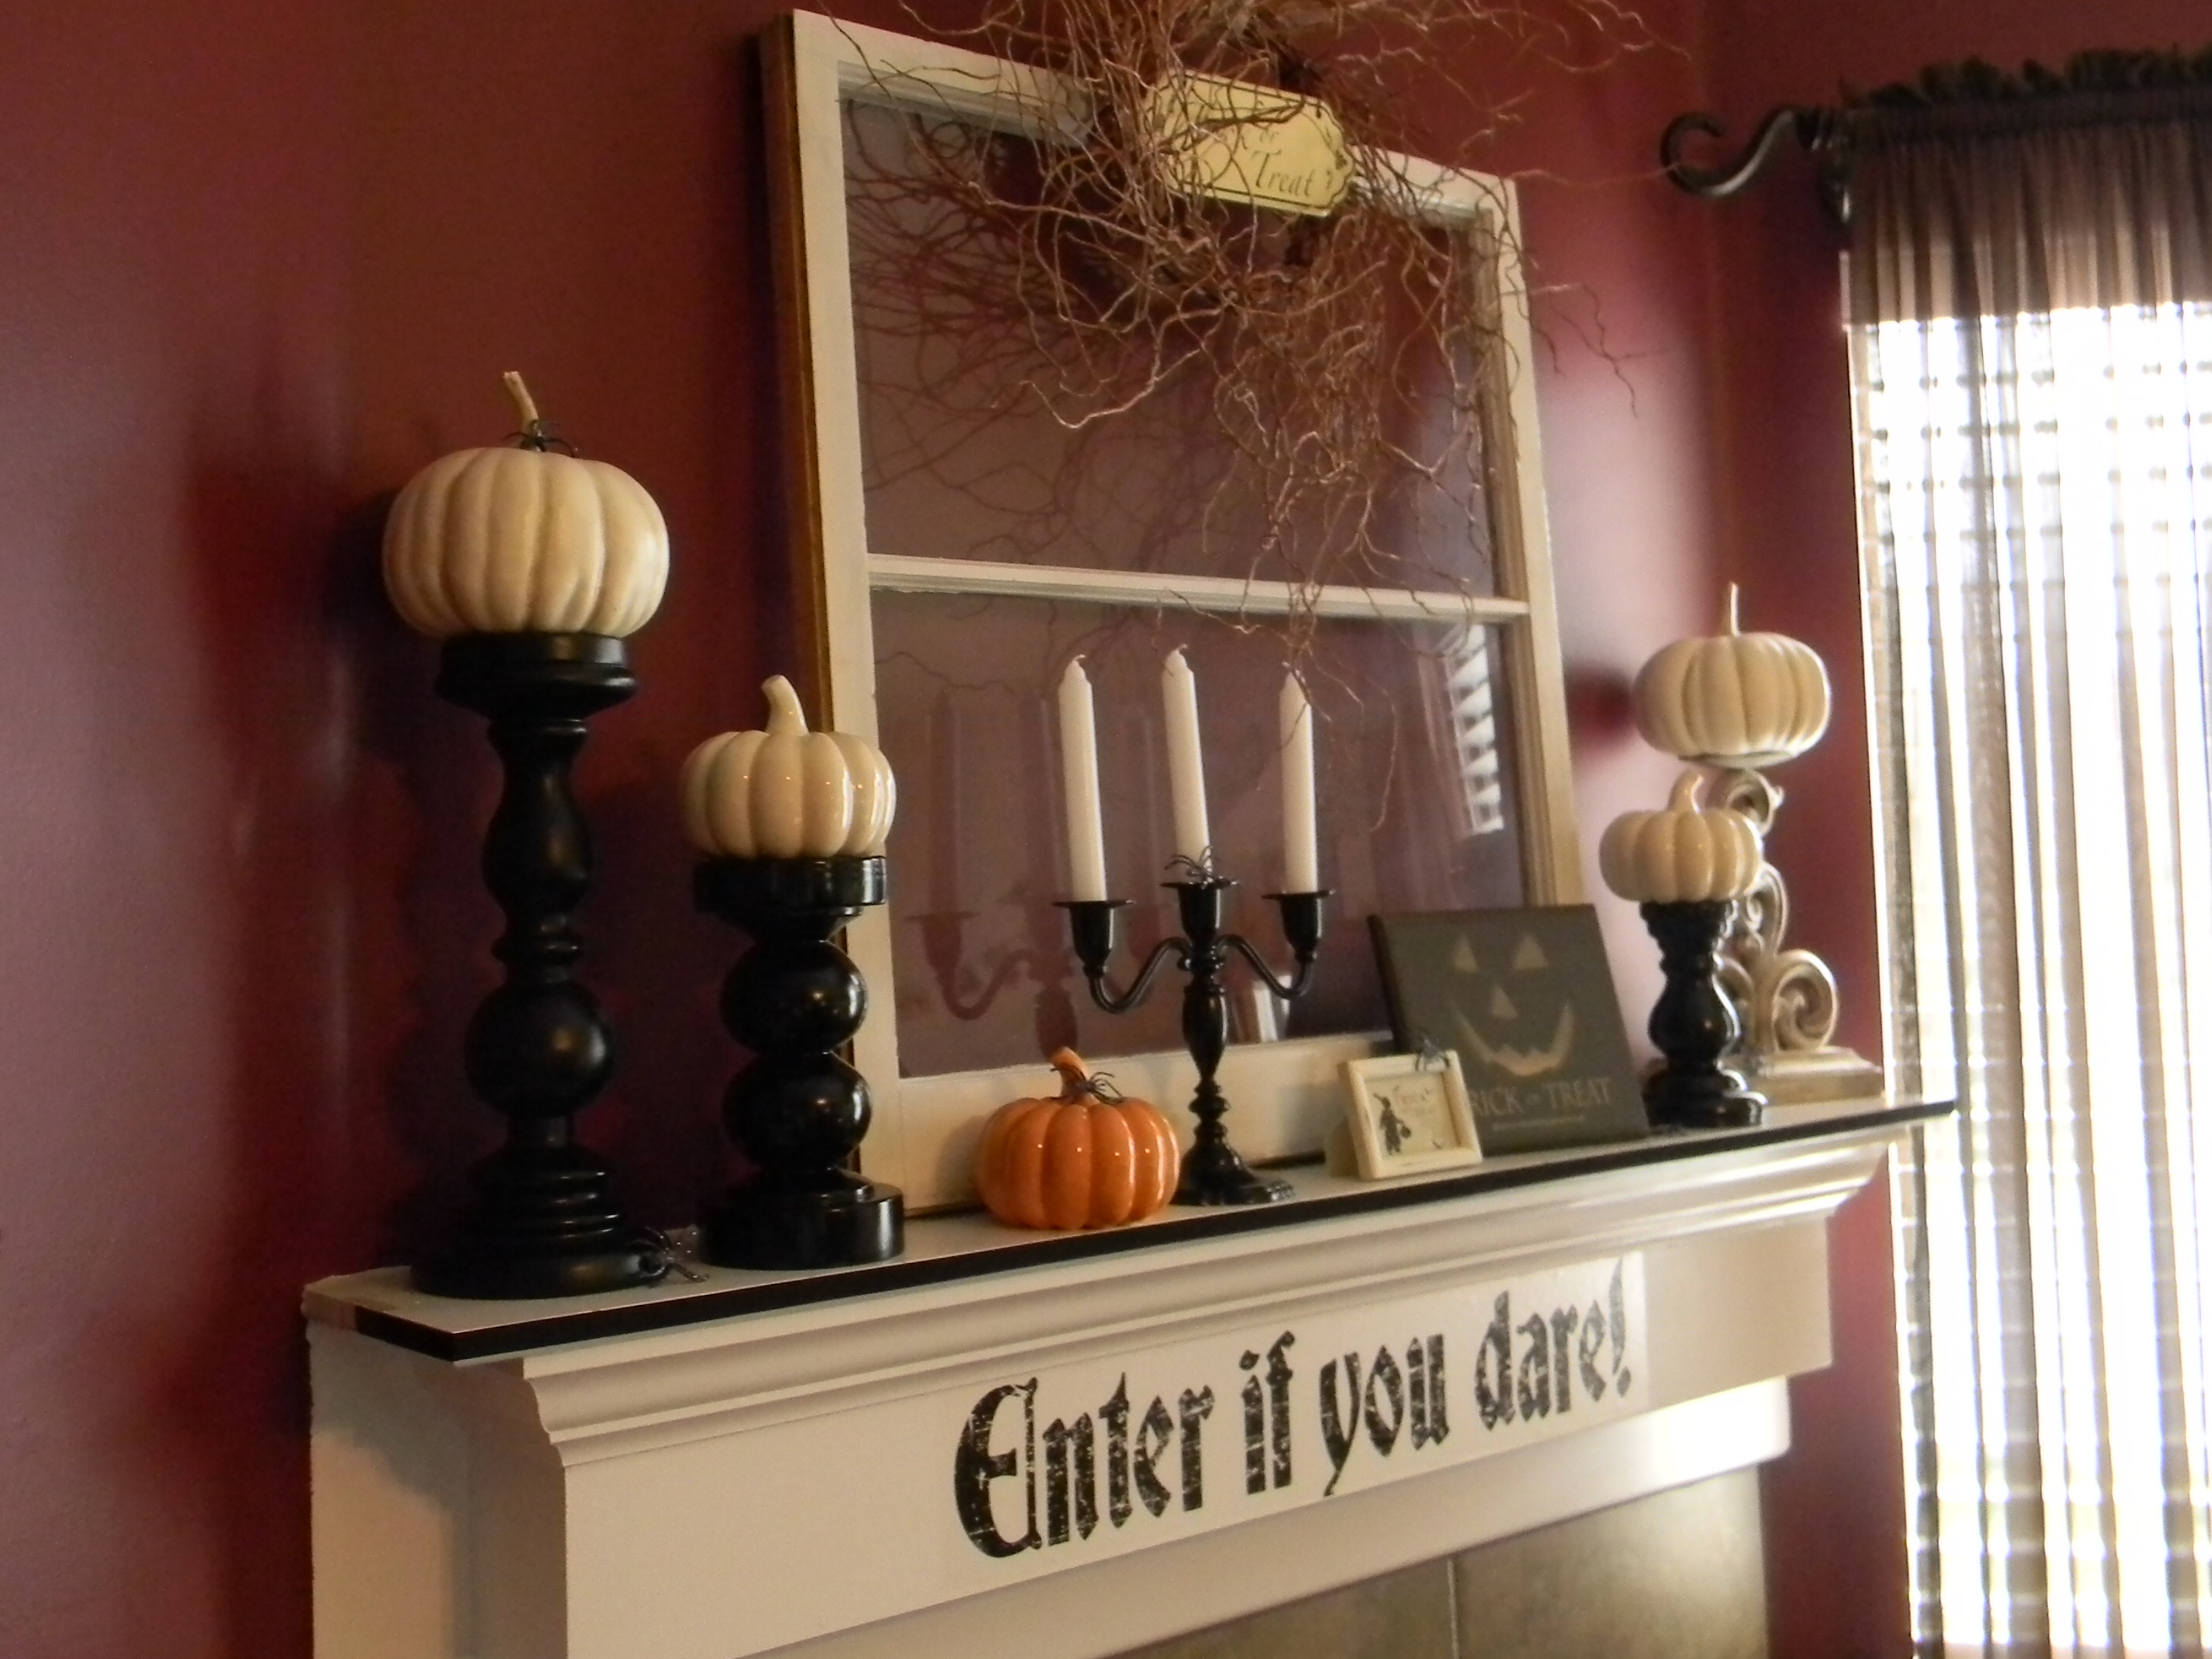 image source - Halloween Mantel Decor